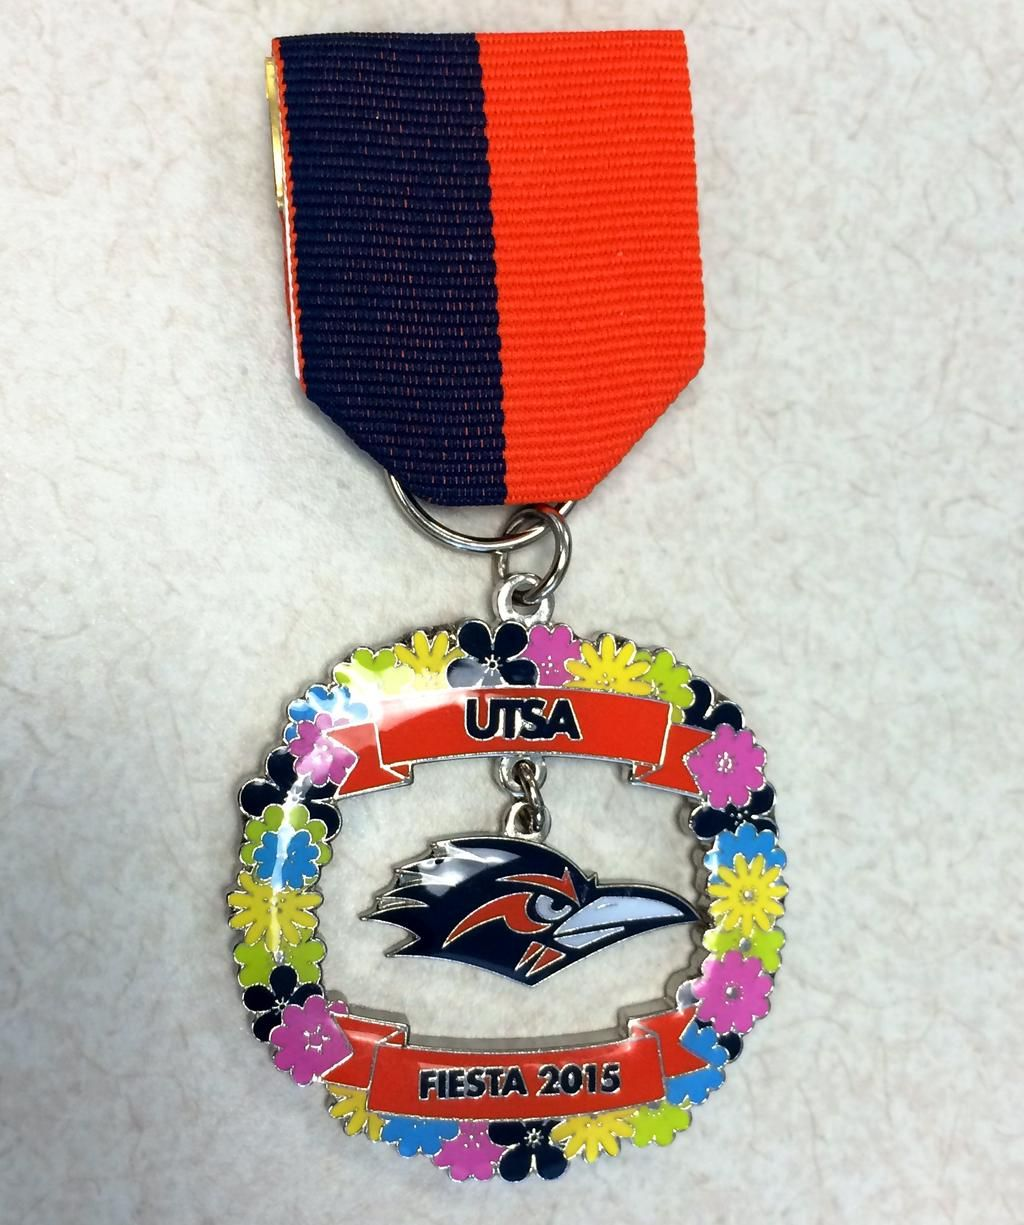 2015 Utsa Fiesta Medal Available At Rr Express The Itc